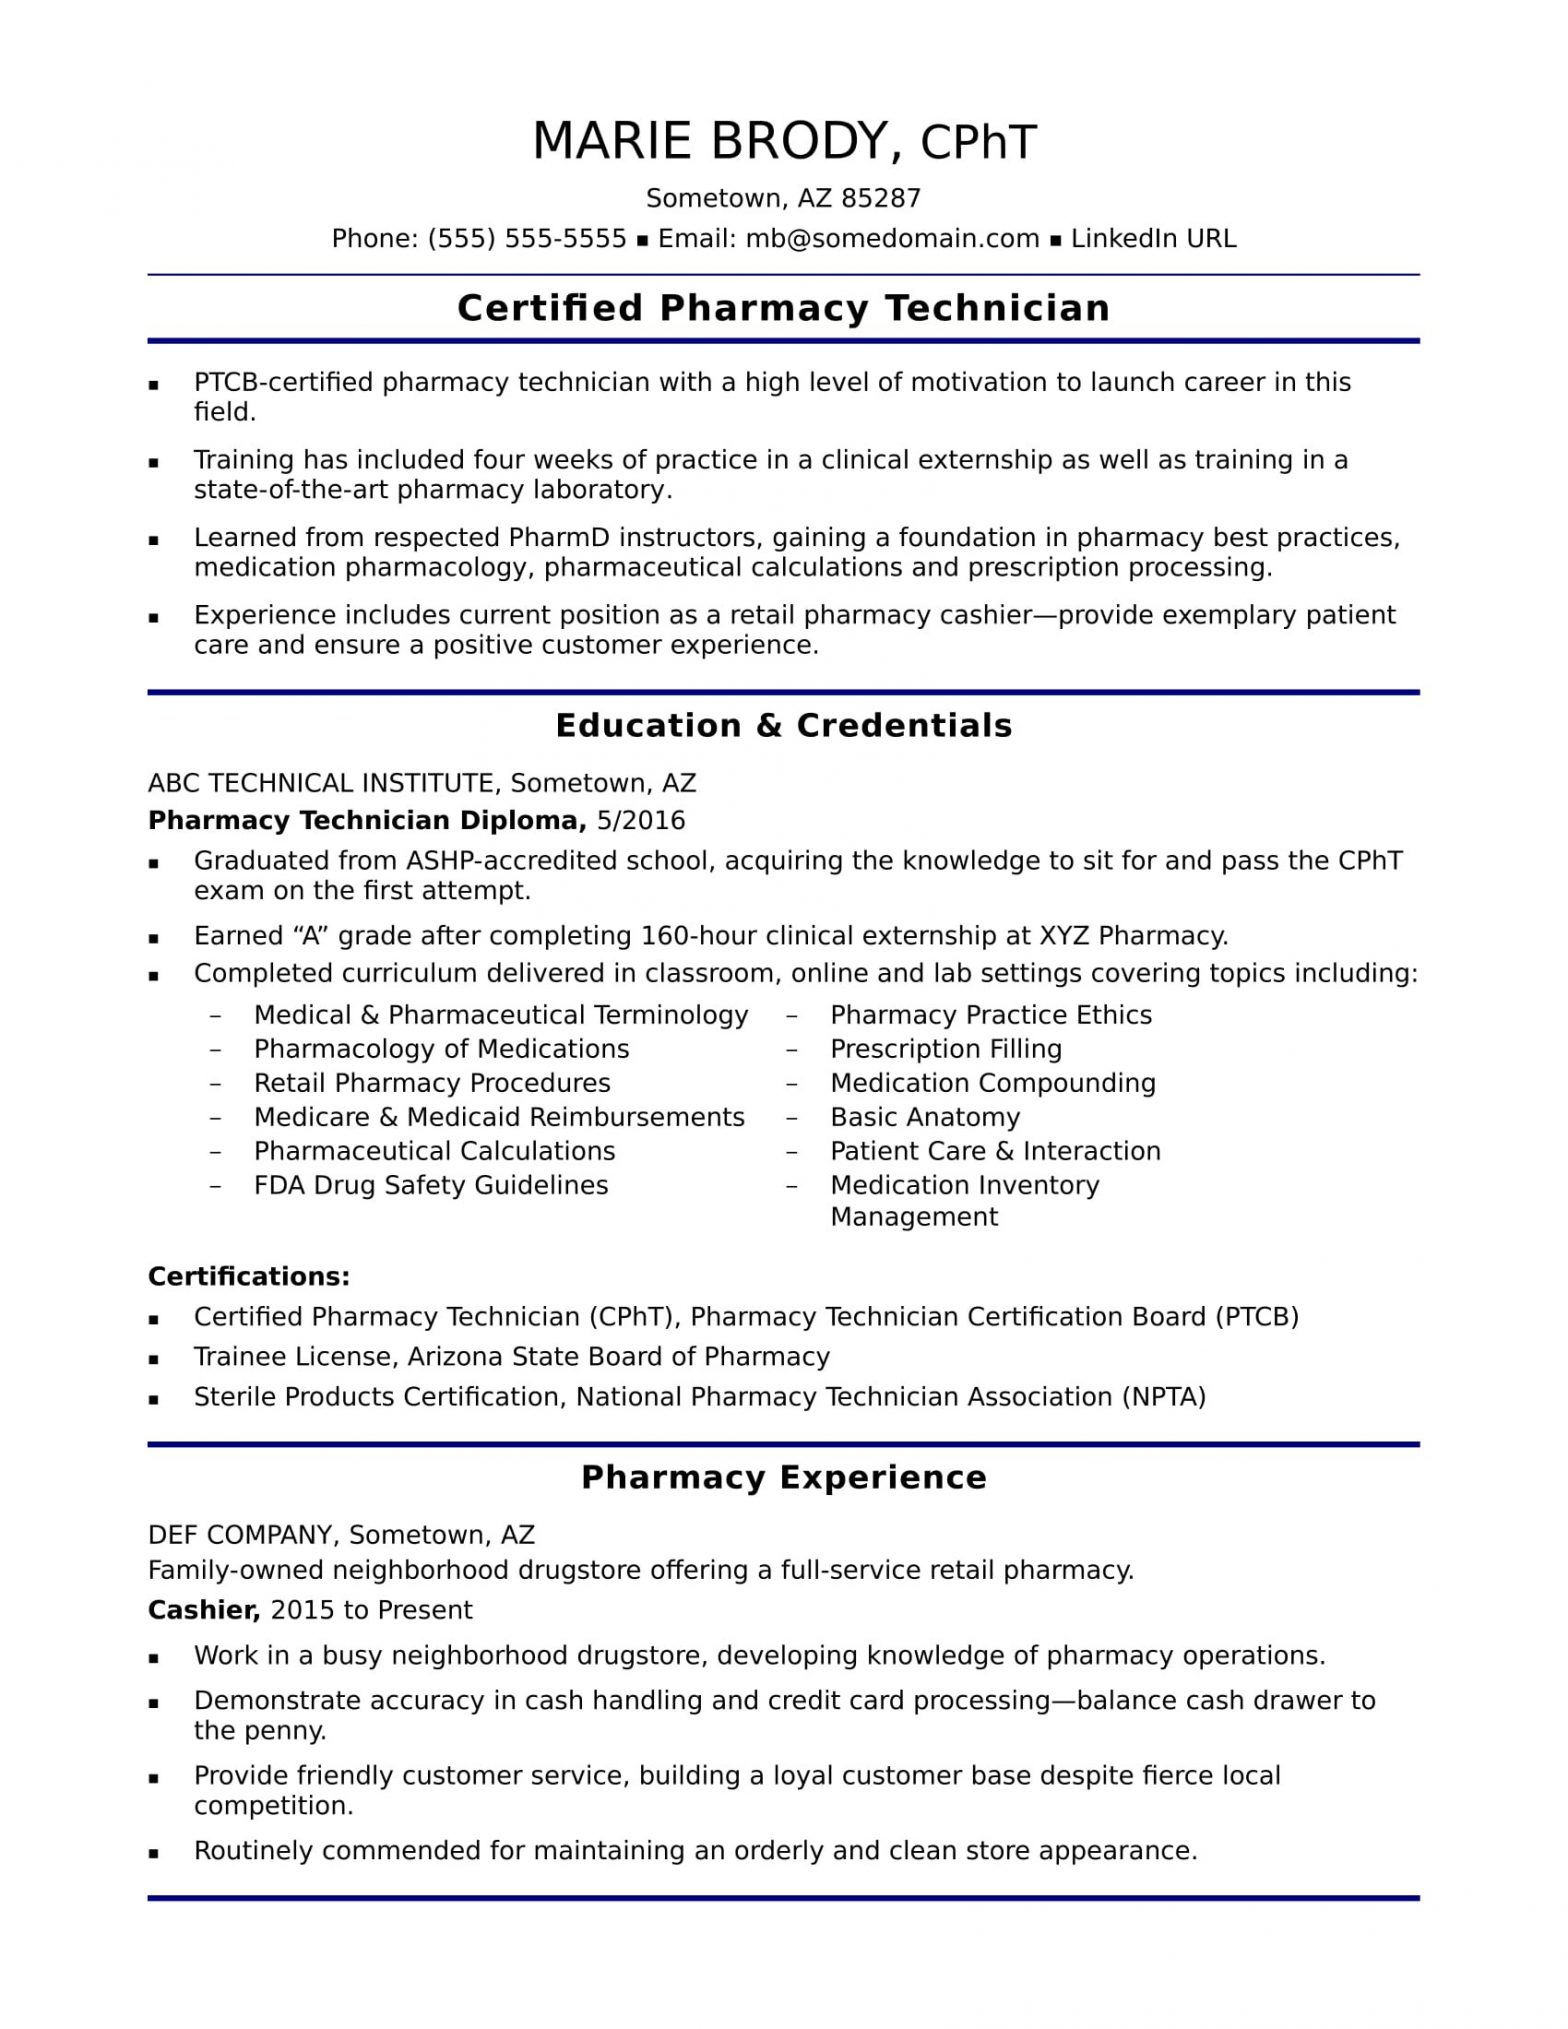 Sample Resume for Pharmacy assistant without Experience Pharmacy assistant Resume No Experience October 2021